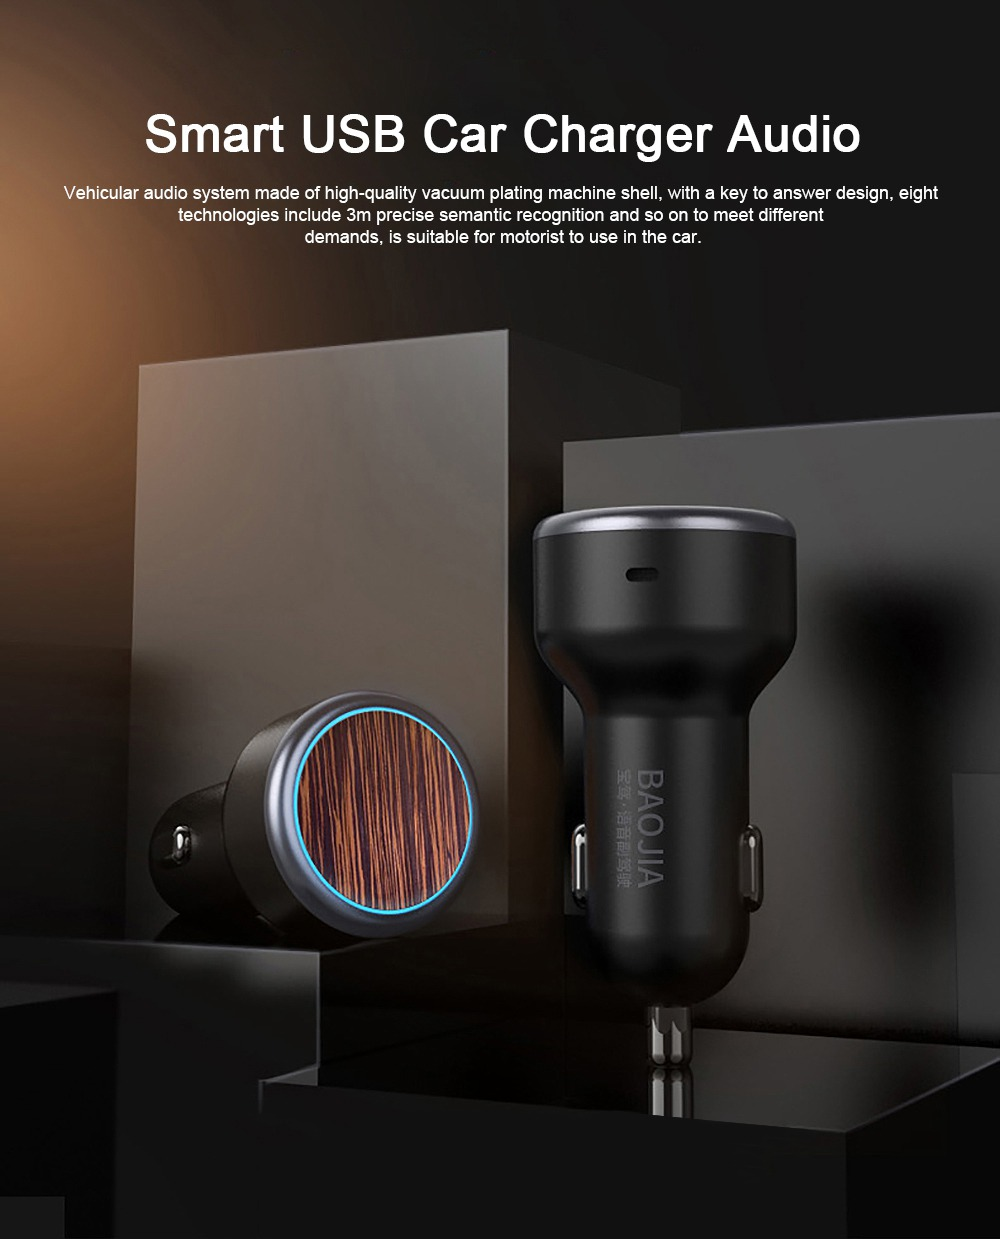 Vehicular Audio System for Motorist, Eight Technologies Ultra-high Tone Quality Car Charger Interactive A Key to Answer Intelligent MP3 0